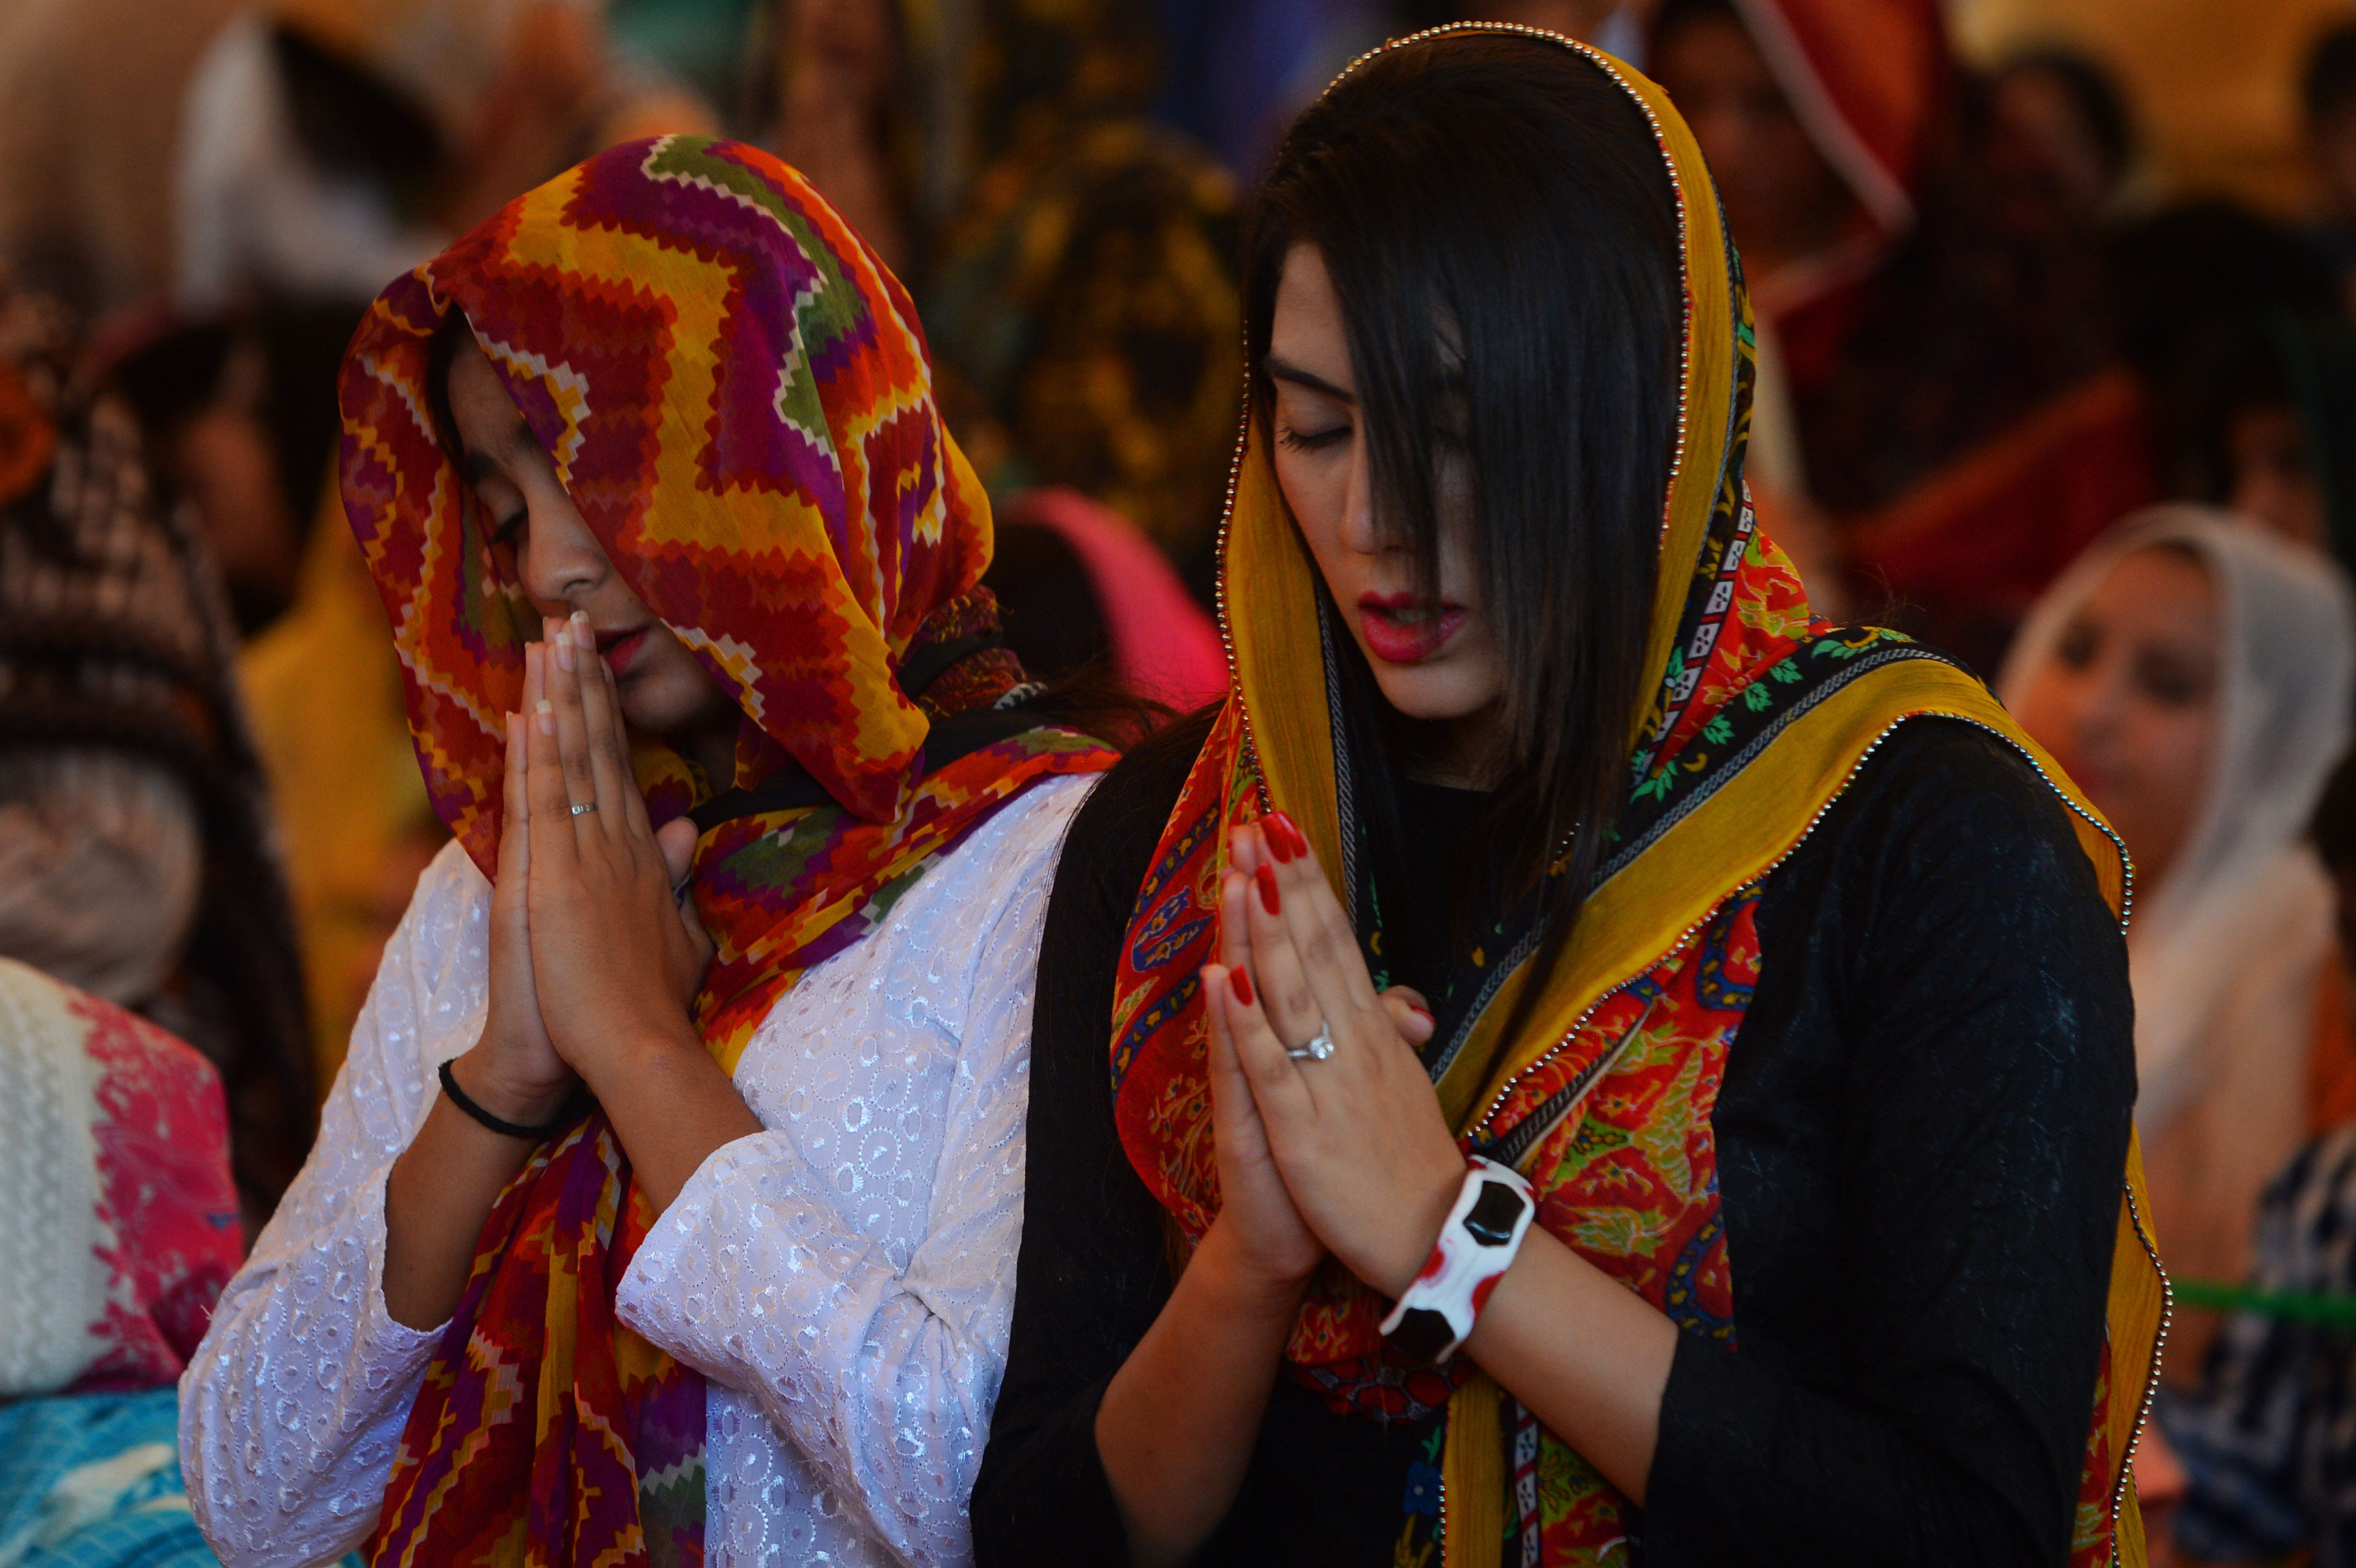 Pakistani Christian devotees attend mass to mark Good Friday at St Anthony's church in Lahore on April 19, 2019. (ARIF ALI/AFP/Getty Images)